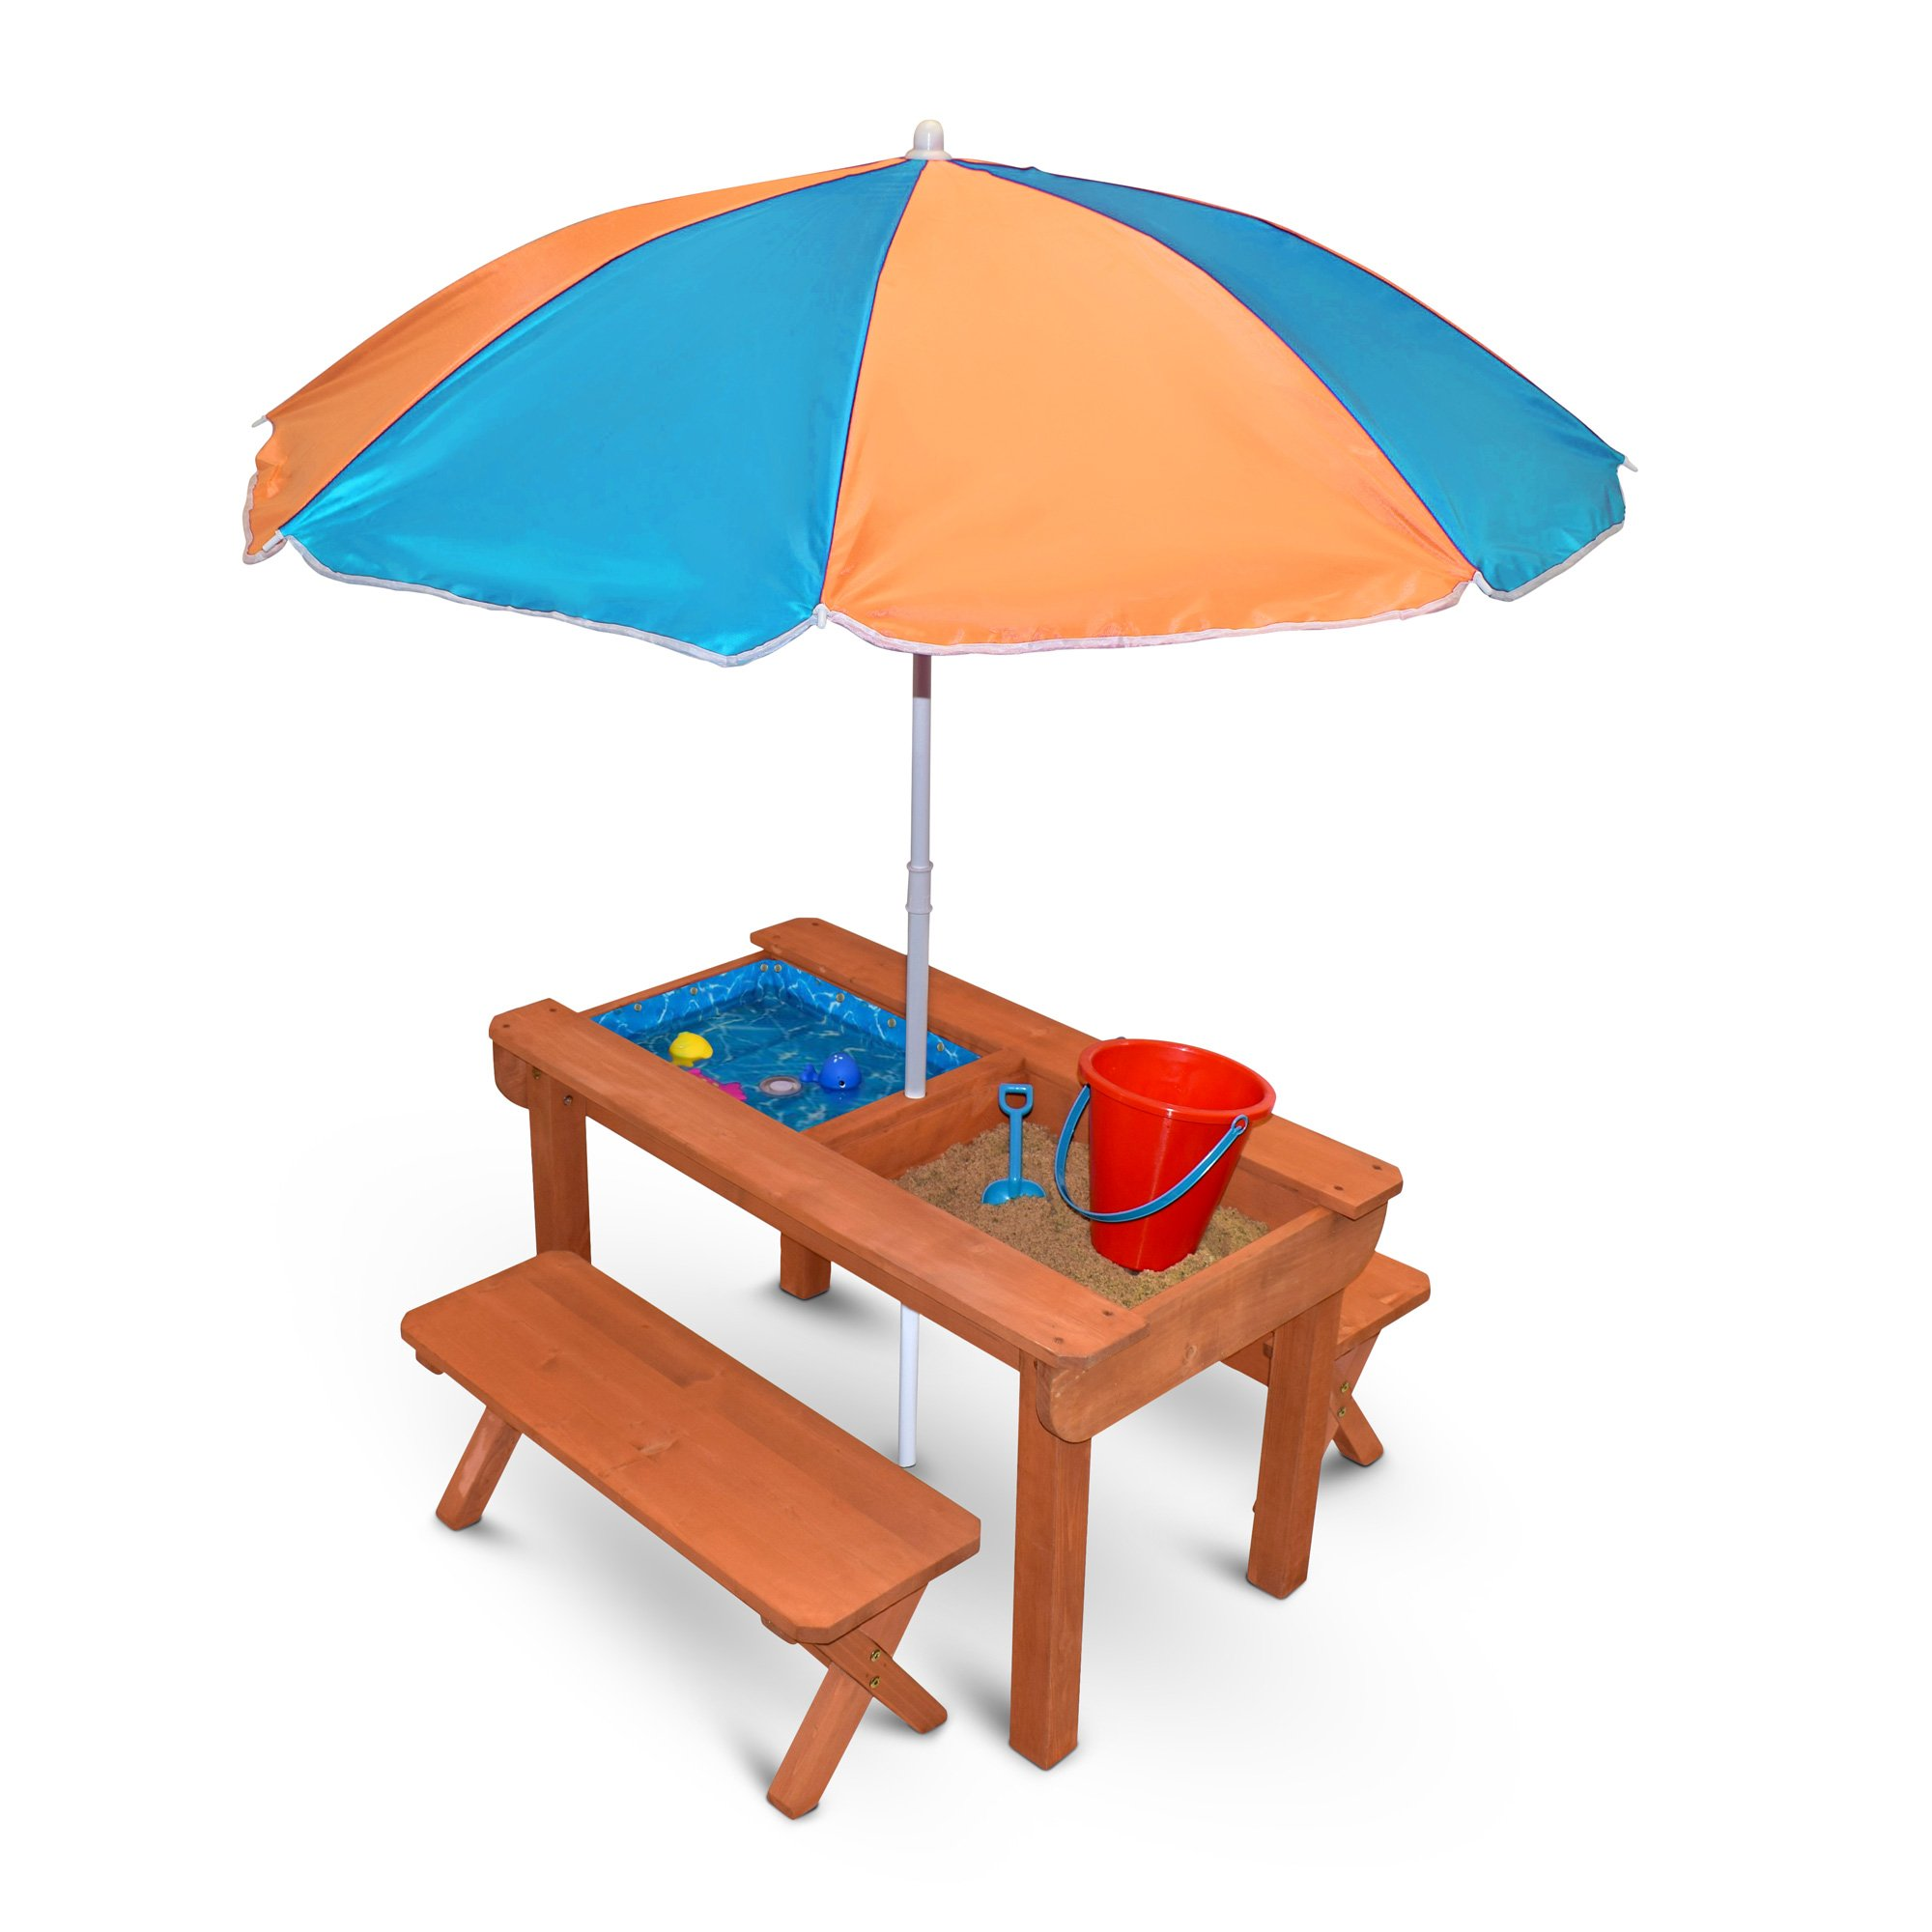 Back Bay Play Kids Sand and Water Table Premium Wooden Indoor Outdoor Convertible Picnic Table - Activity Sensory Toy Playset Promotes Learning – Removable Lids for Sandbox & Splash Pool (Natural)